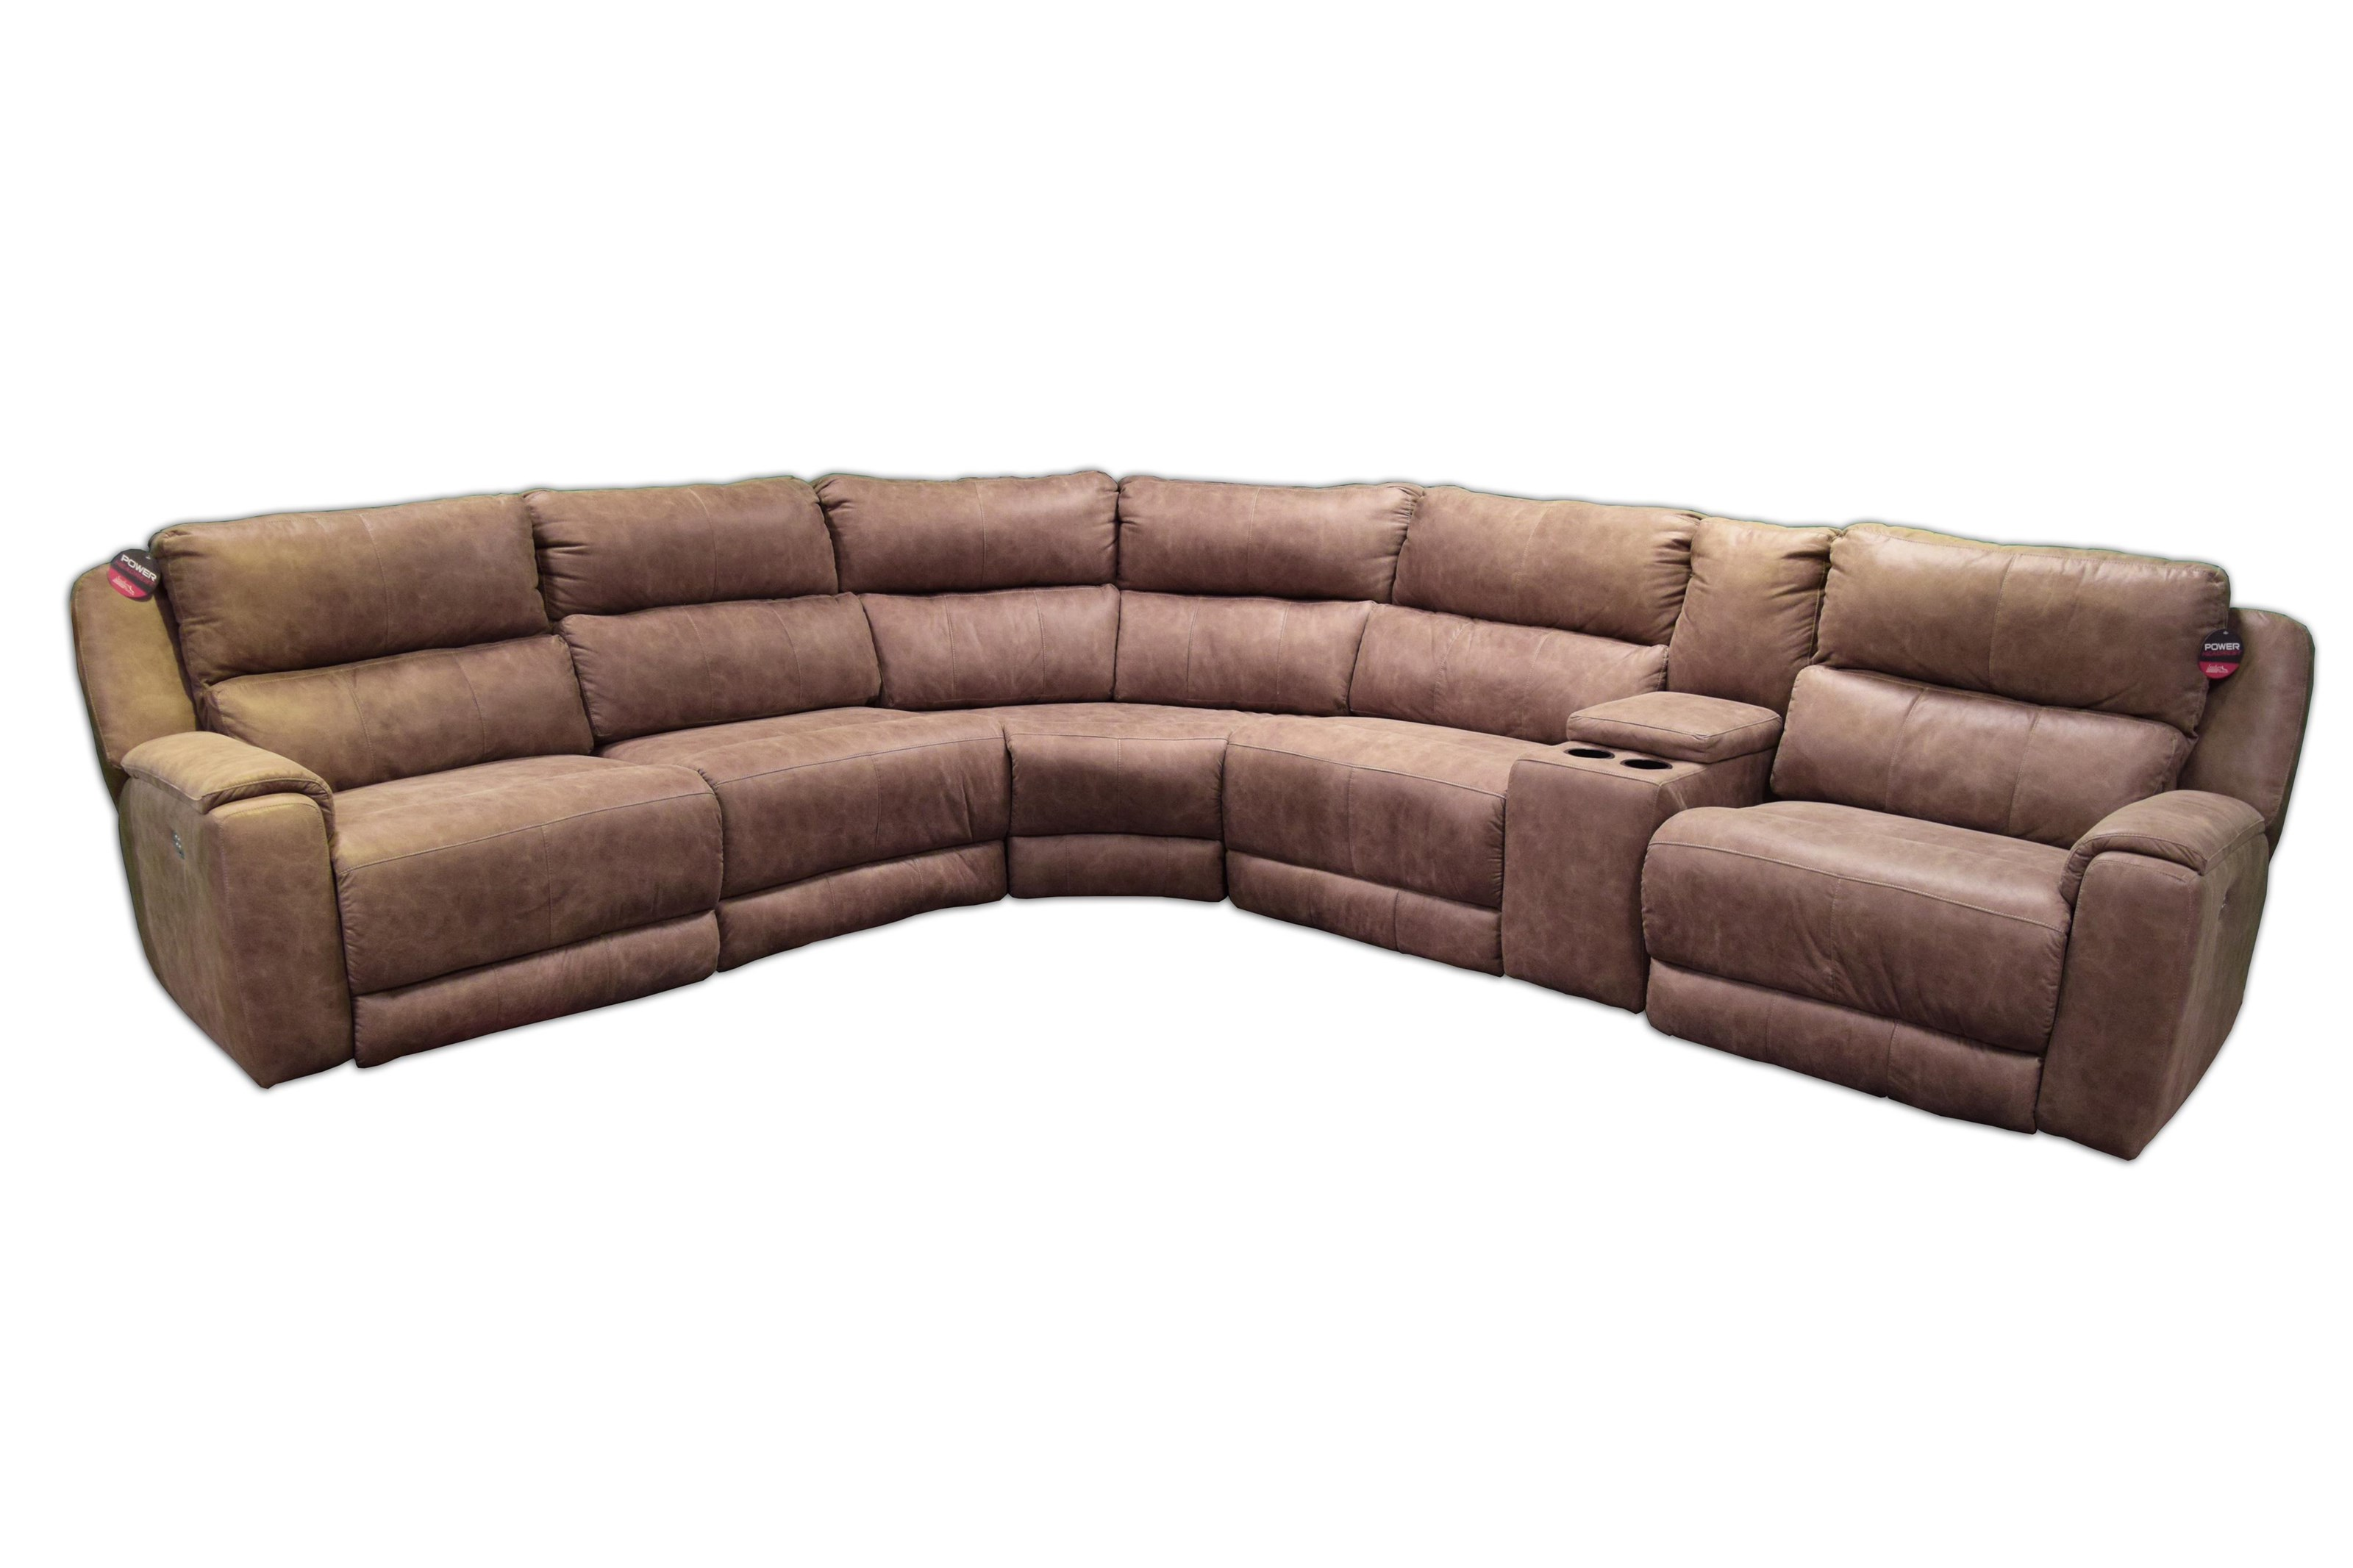 ComfortZone Dazzle Sectional w/ Cup Holders and Power Headrests - Item Number: 883-05P+92+84+92+47+06P-906-42